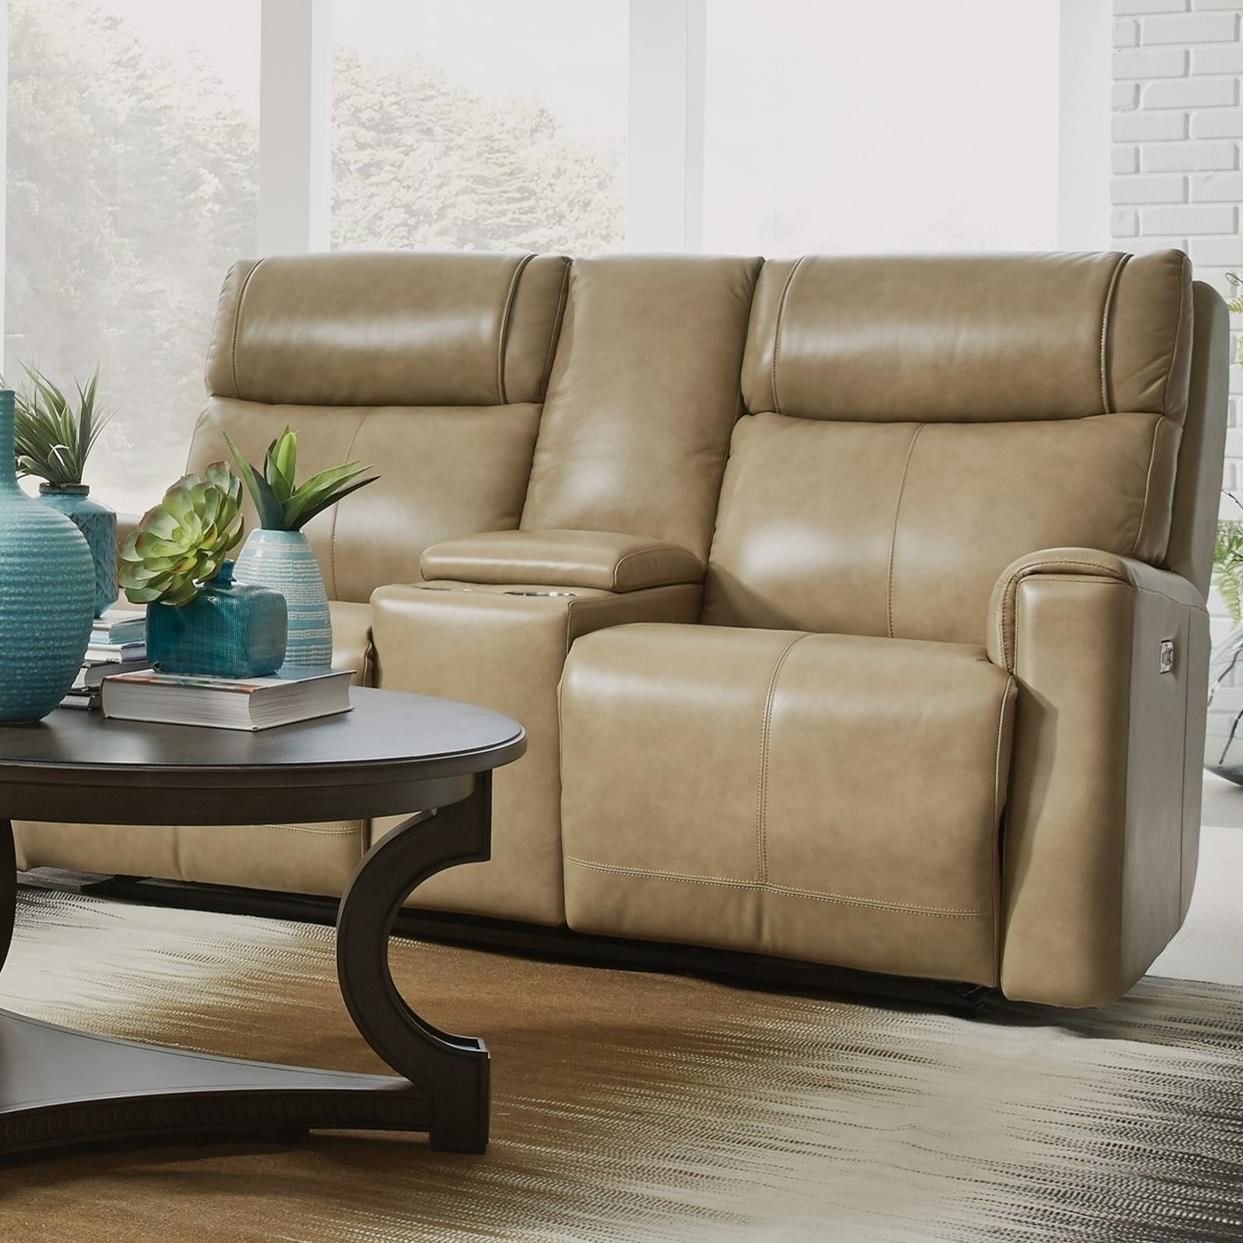 Latitudes - Holton Power Reclining Console Loveseat by Flexsteel at Walker's Furniture